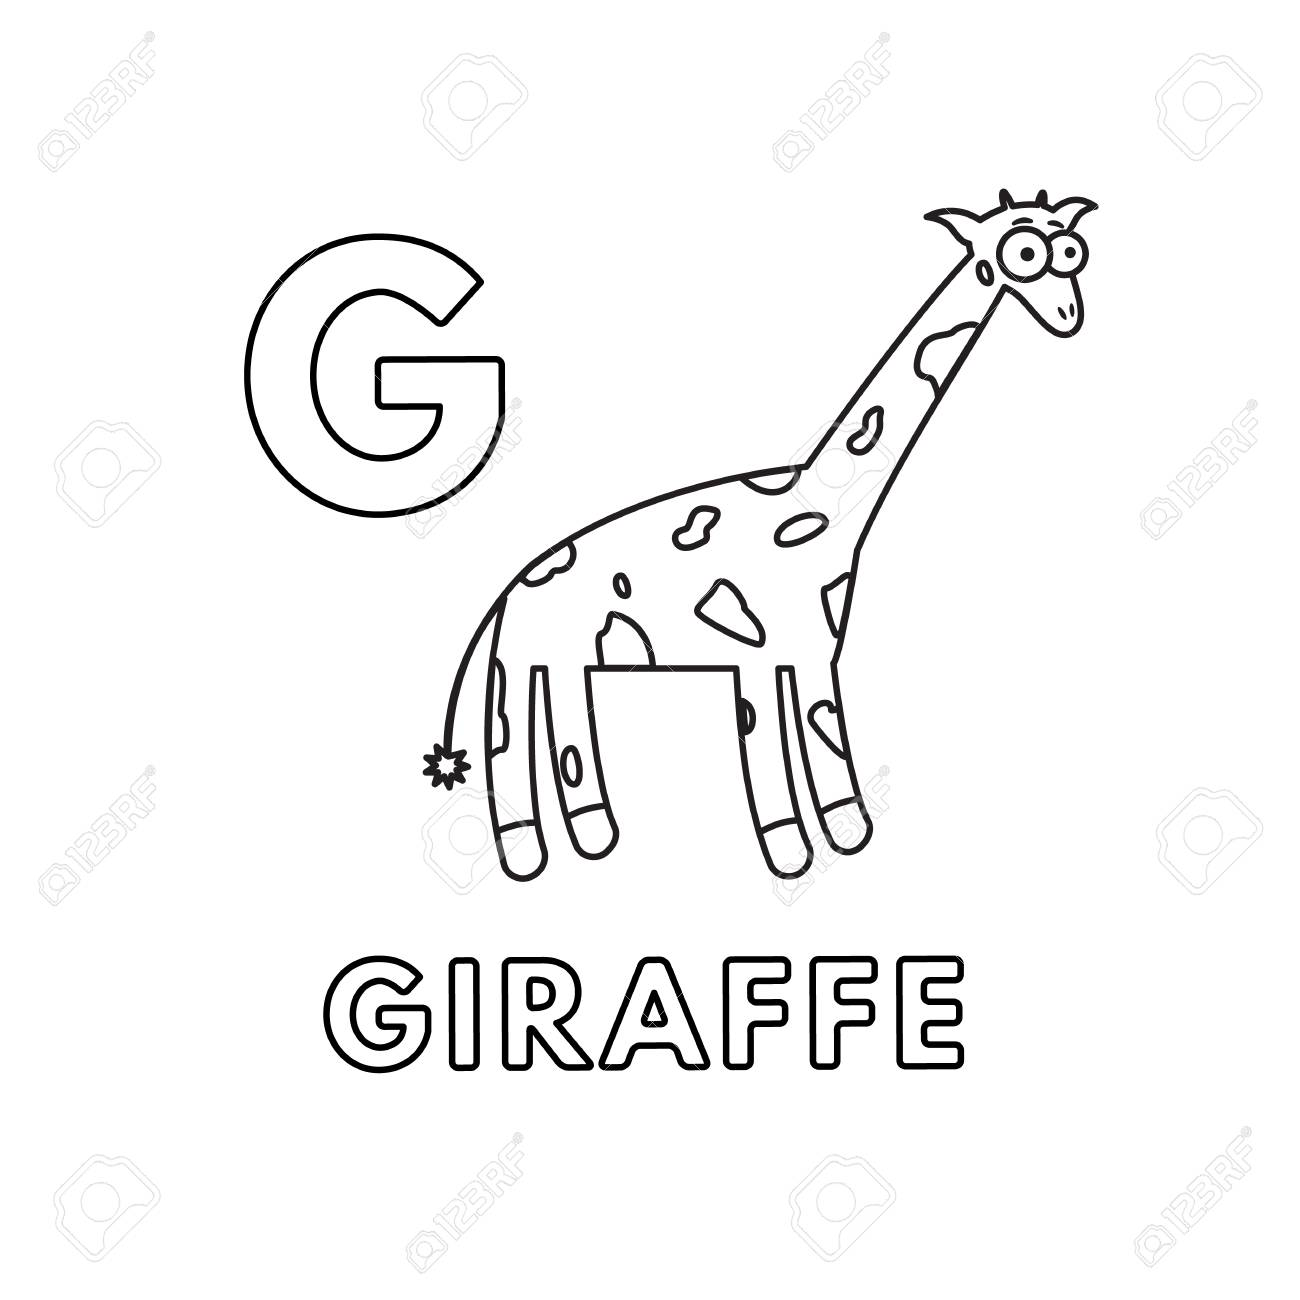 Alphabet With Cute Cartoon Animals Isolated On White Background Royalty Free Cliparts Vectors And Stock Illustration Image 122976235